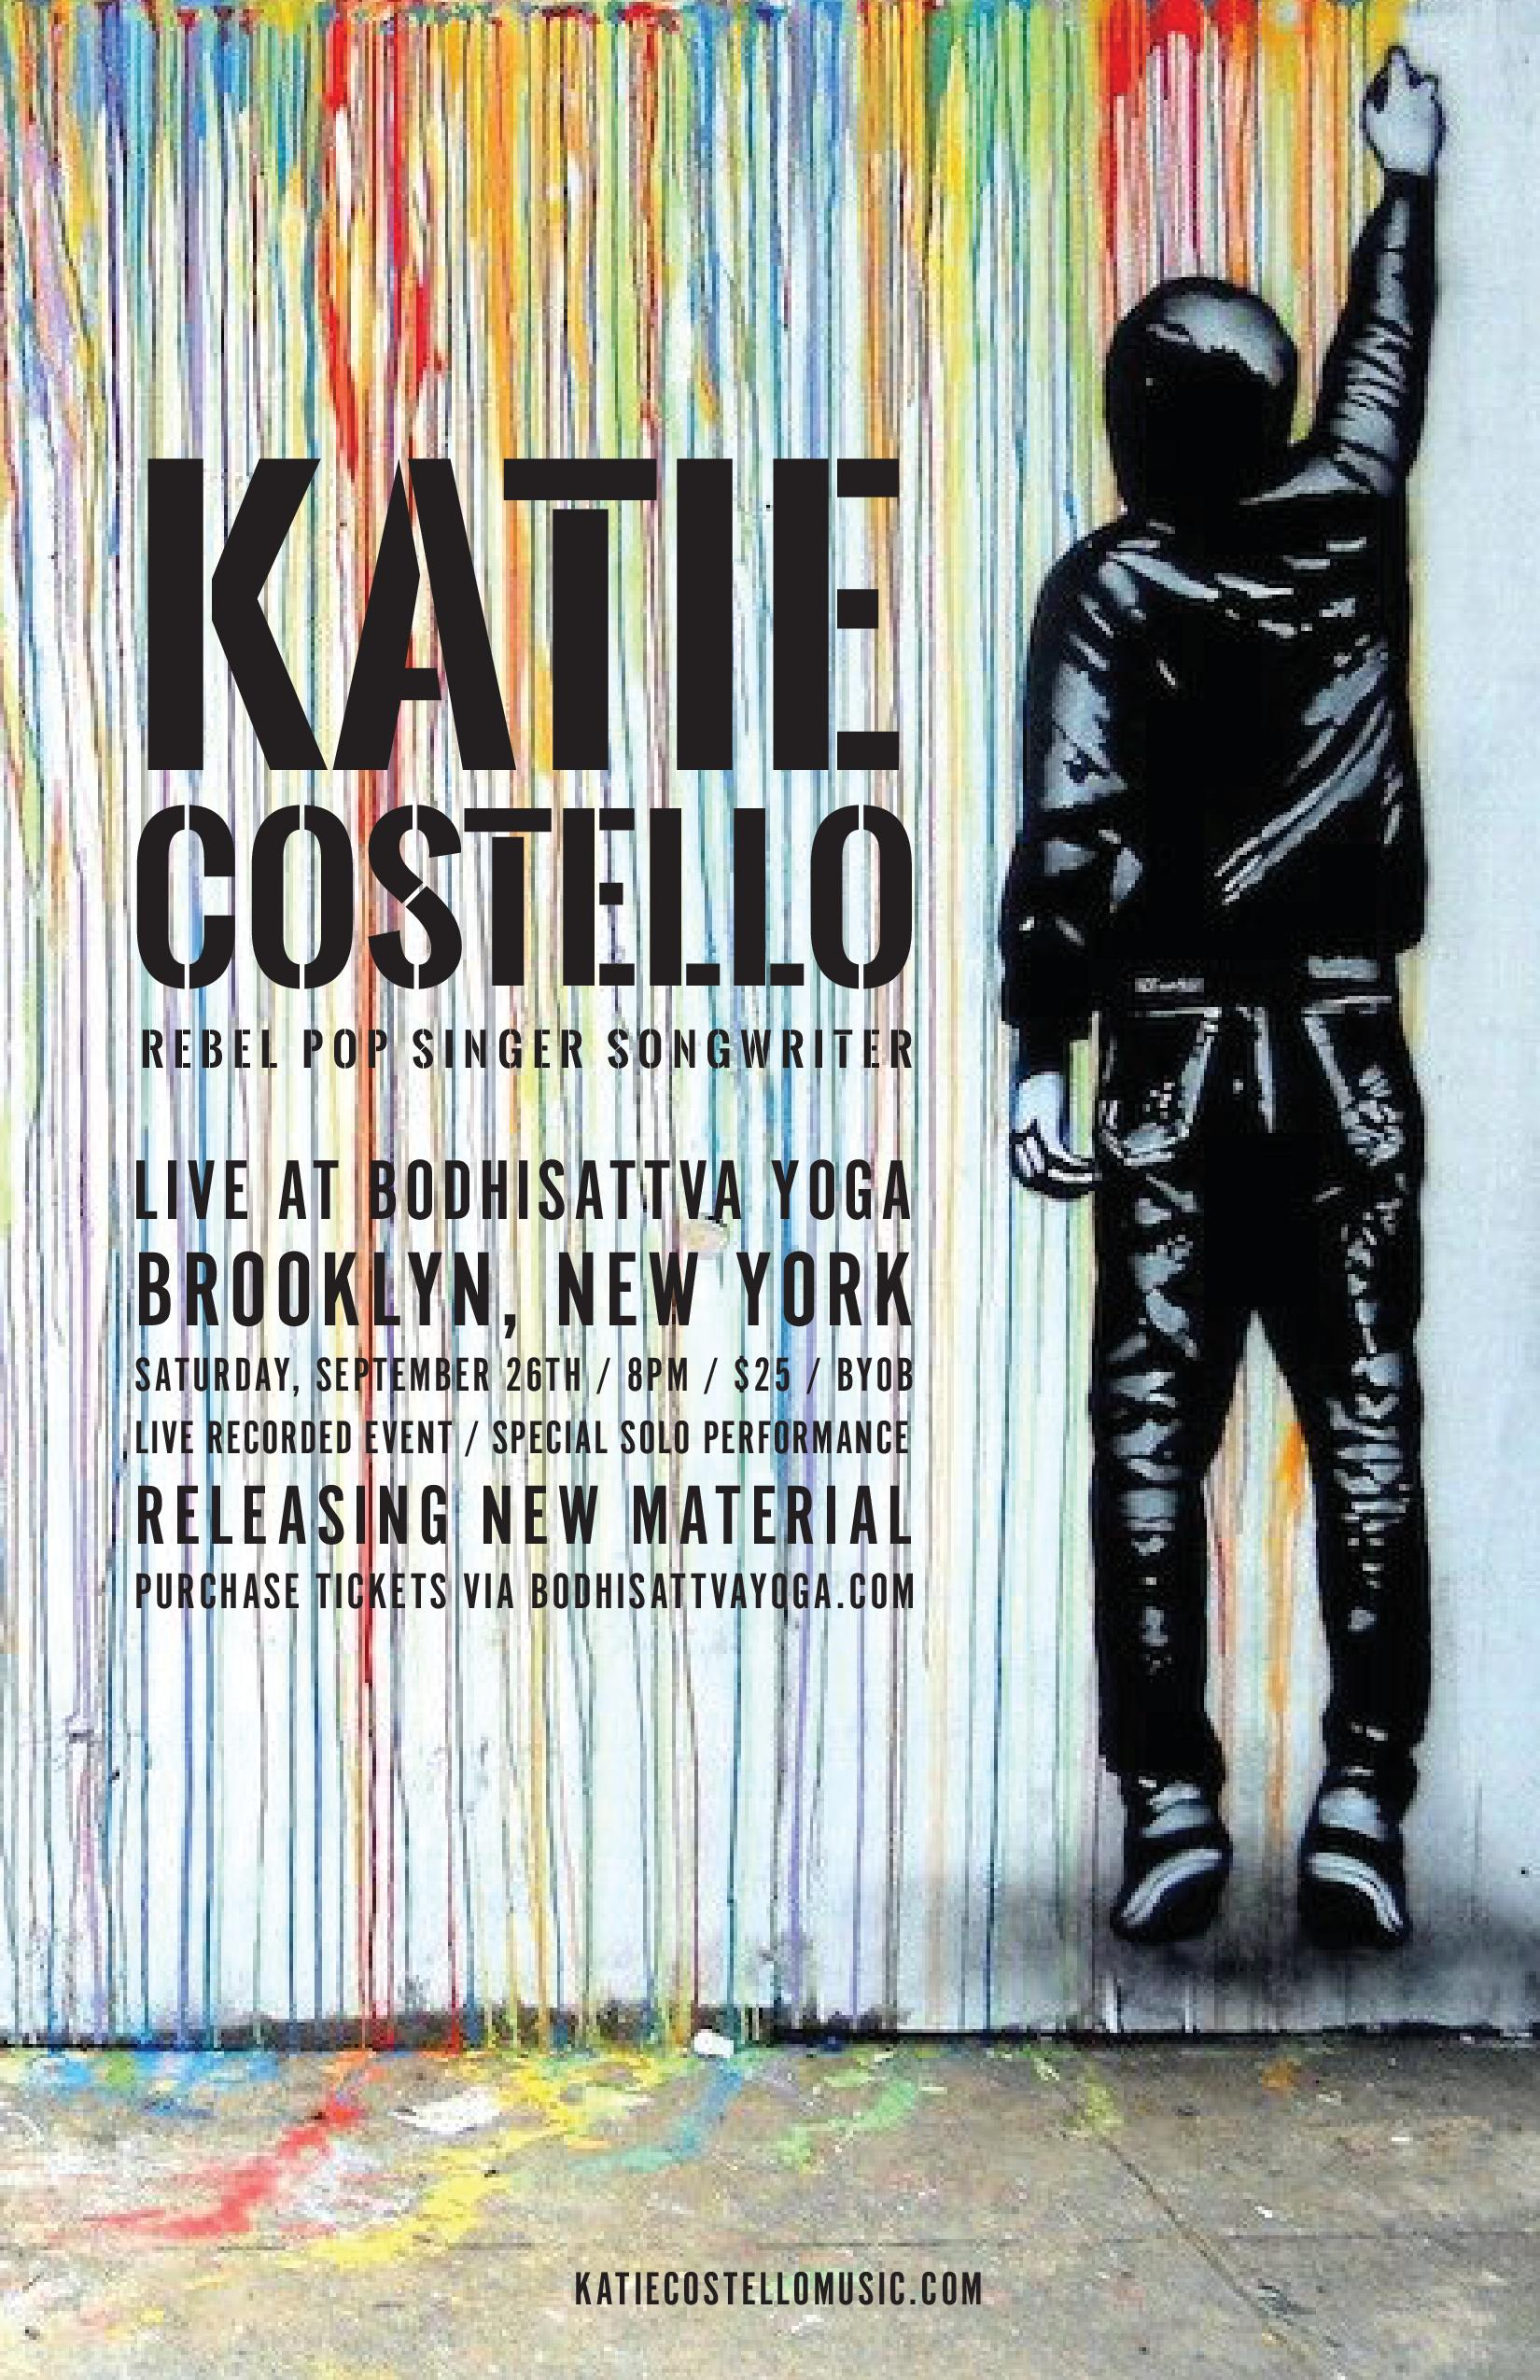 All Rights Reserved | Katie Costello Music